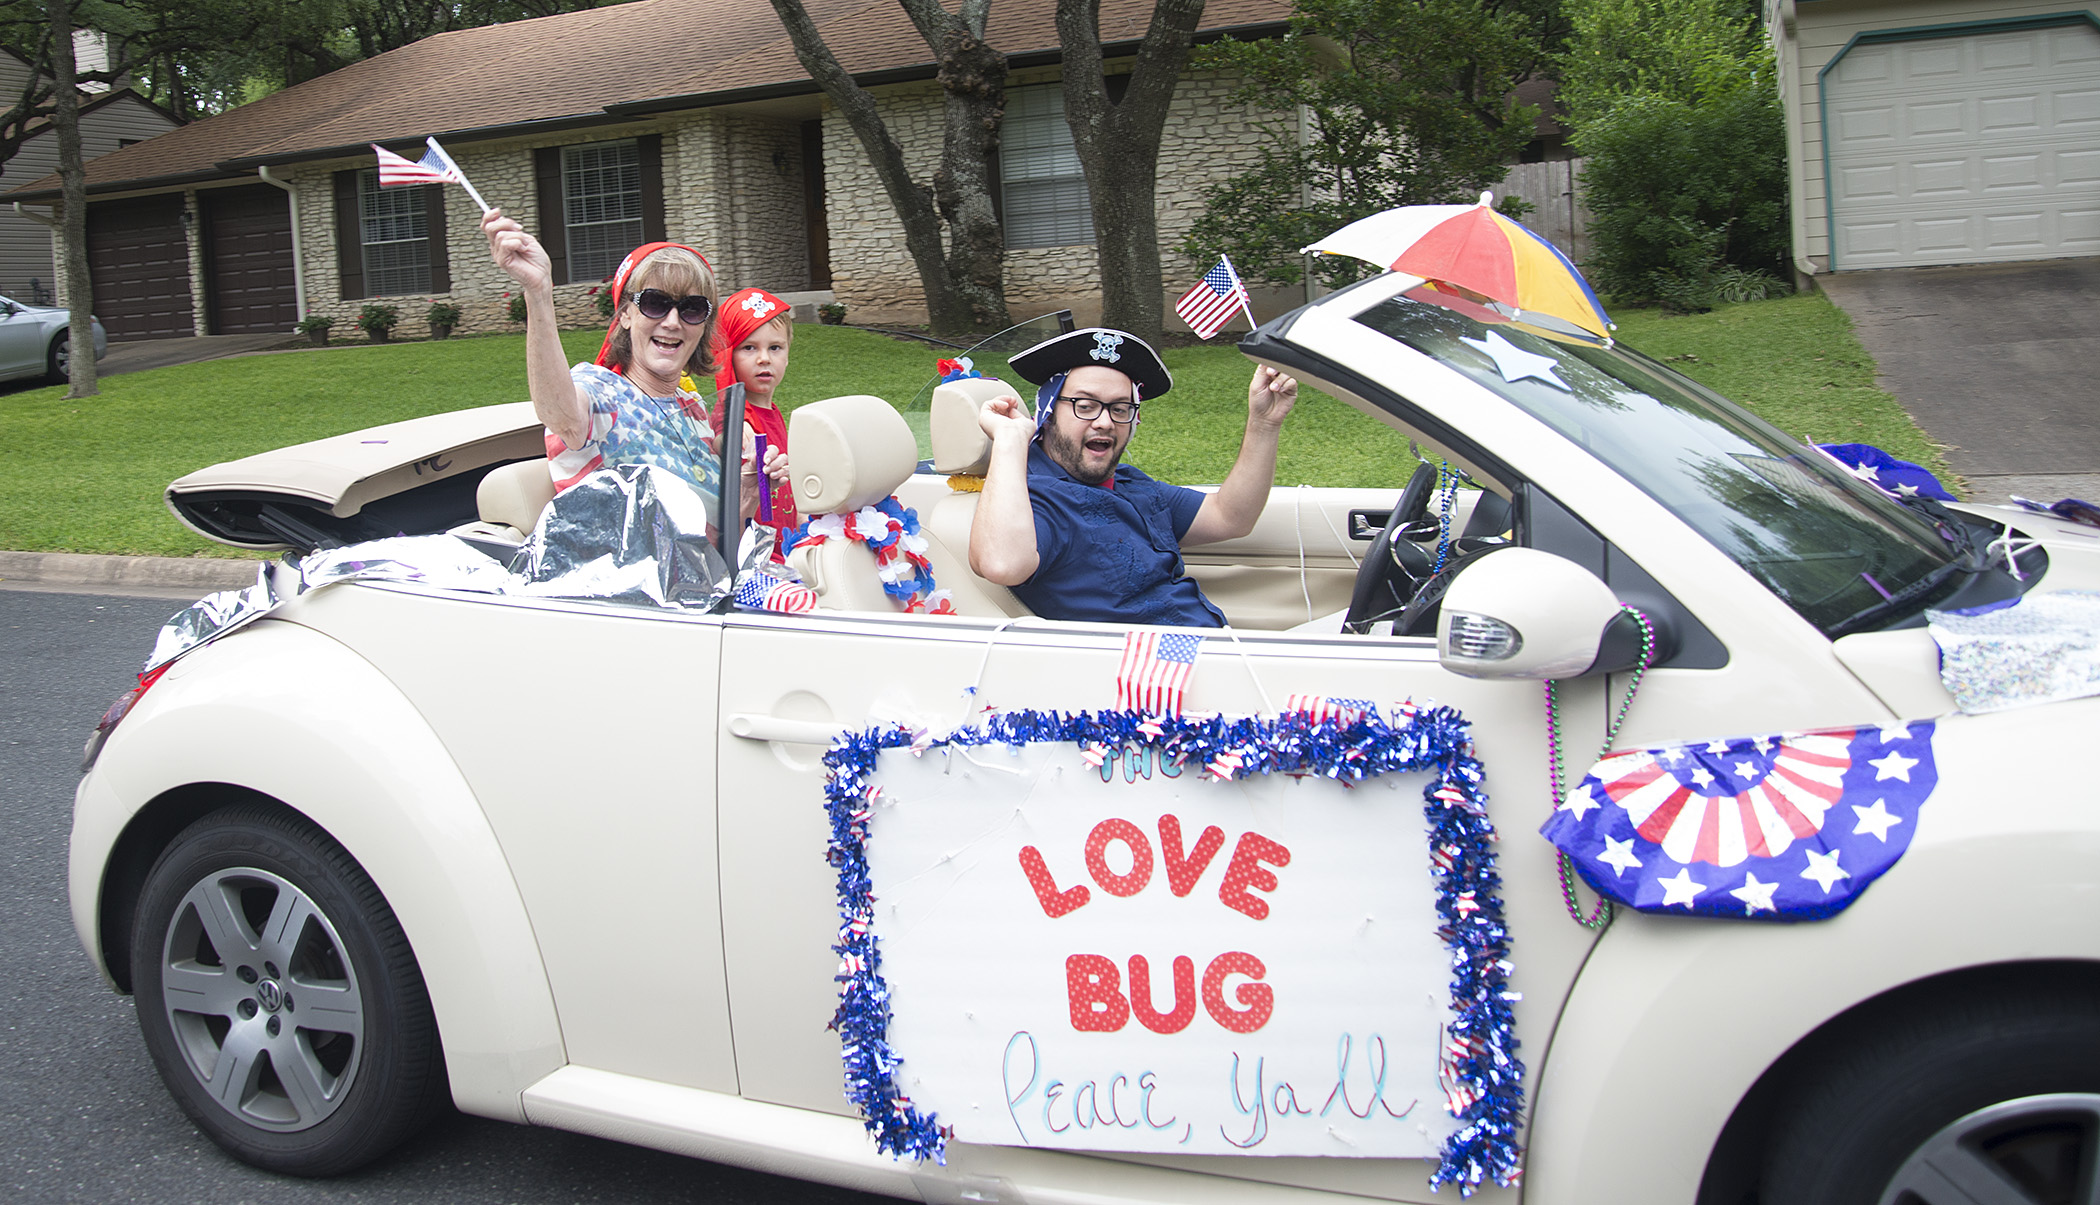 Love Bug won best float two years in row. Must be those patriotic pirates.